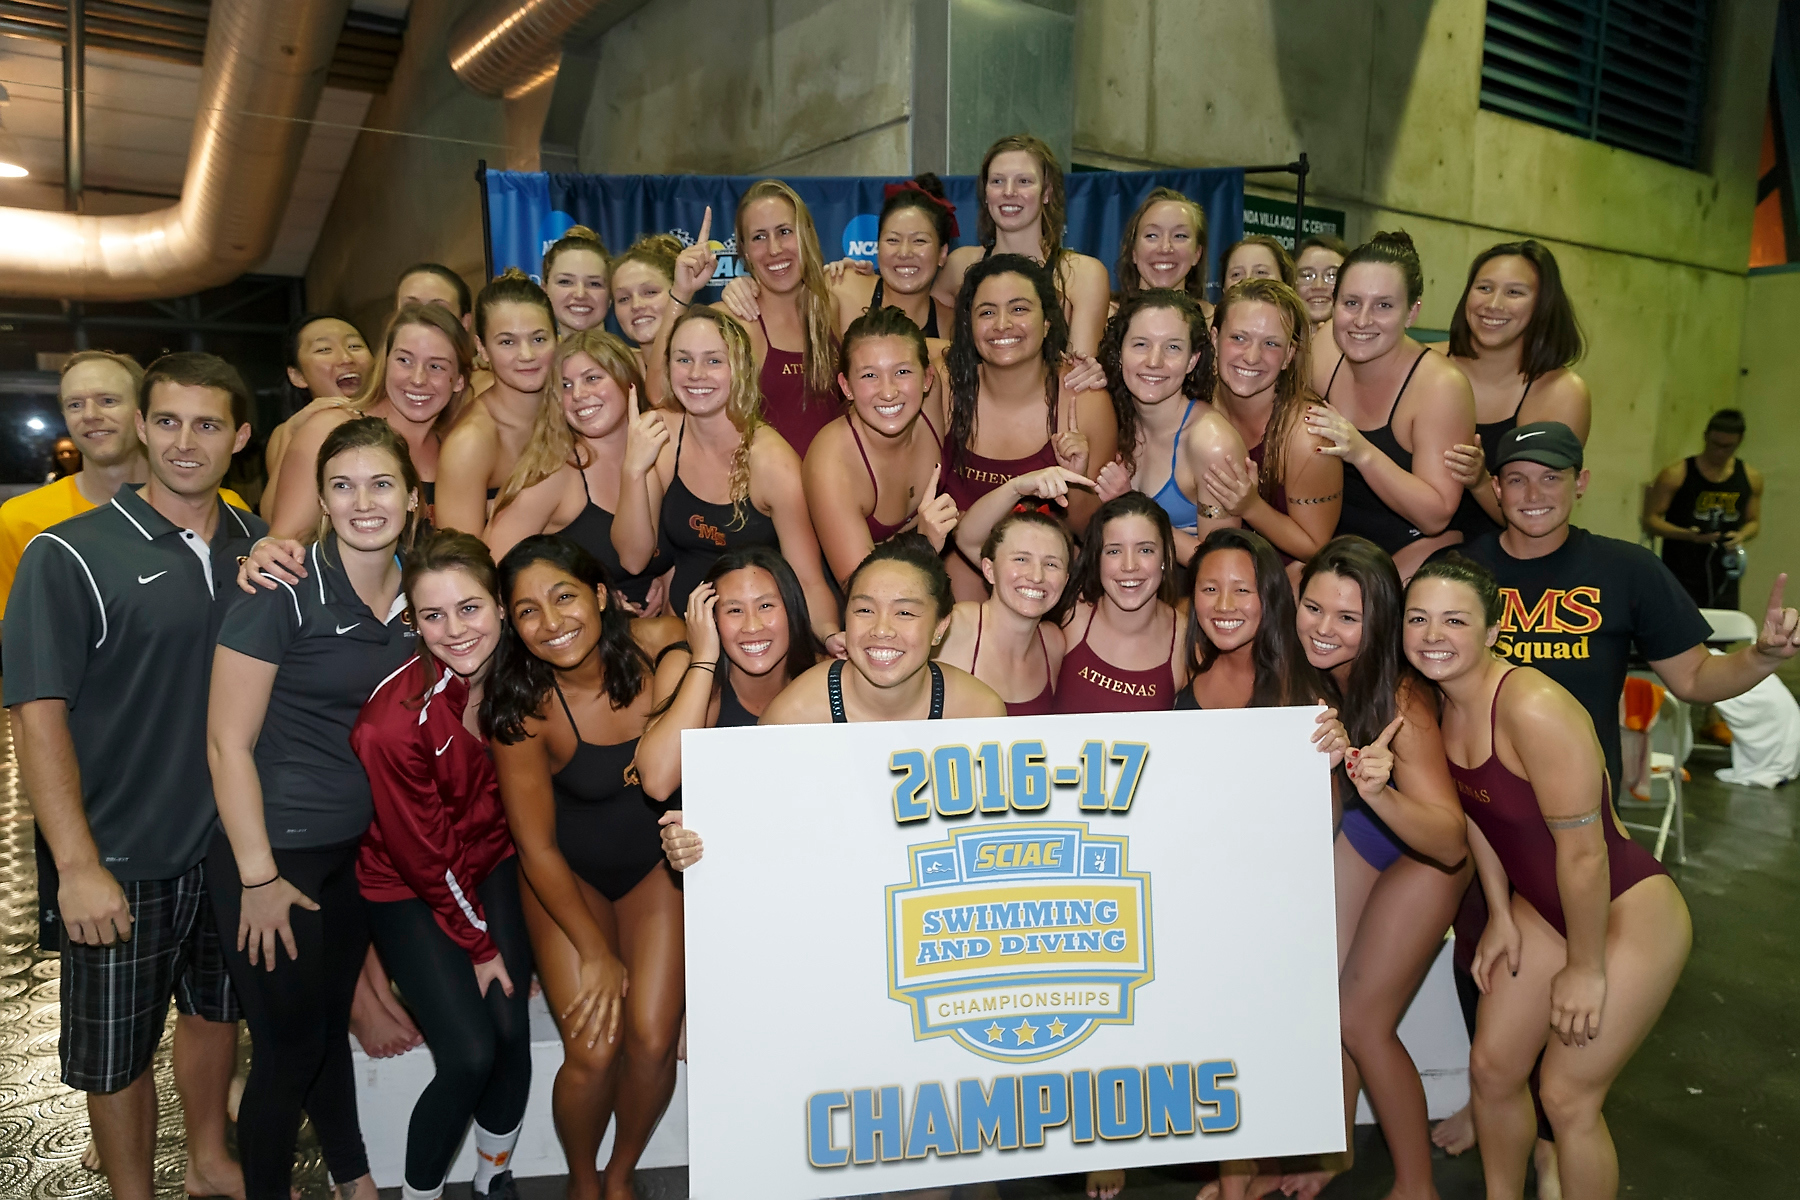 SCIAC Champs: Stags by eight points, Athenas by 296